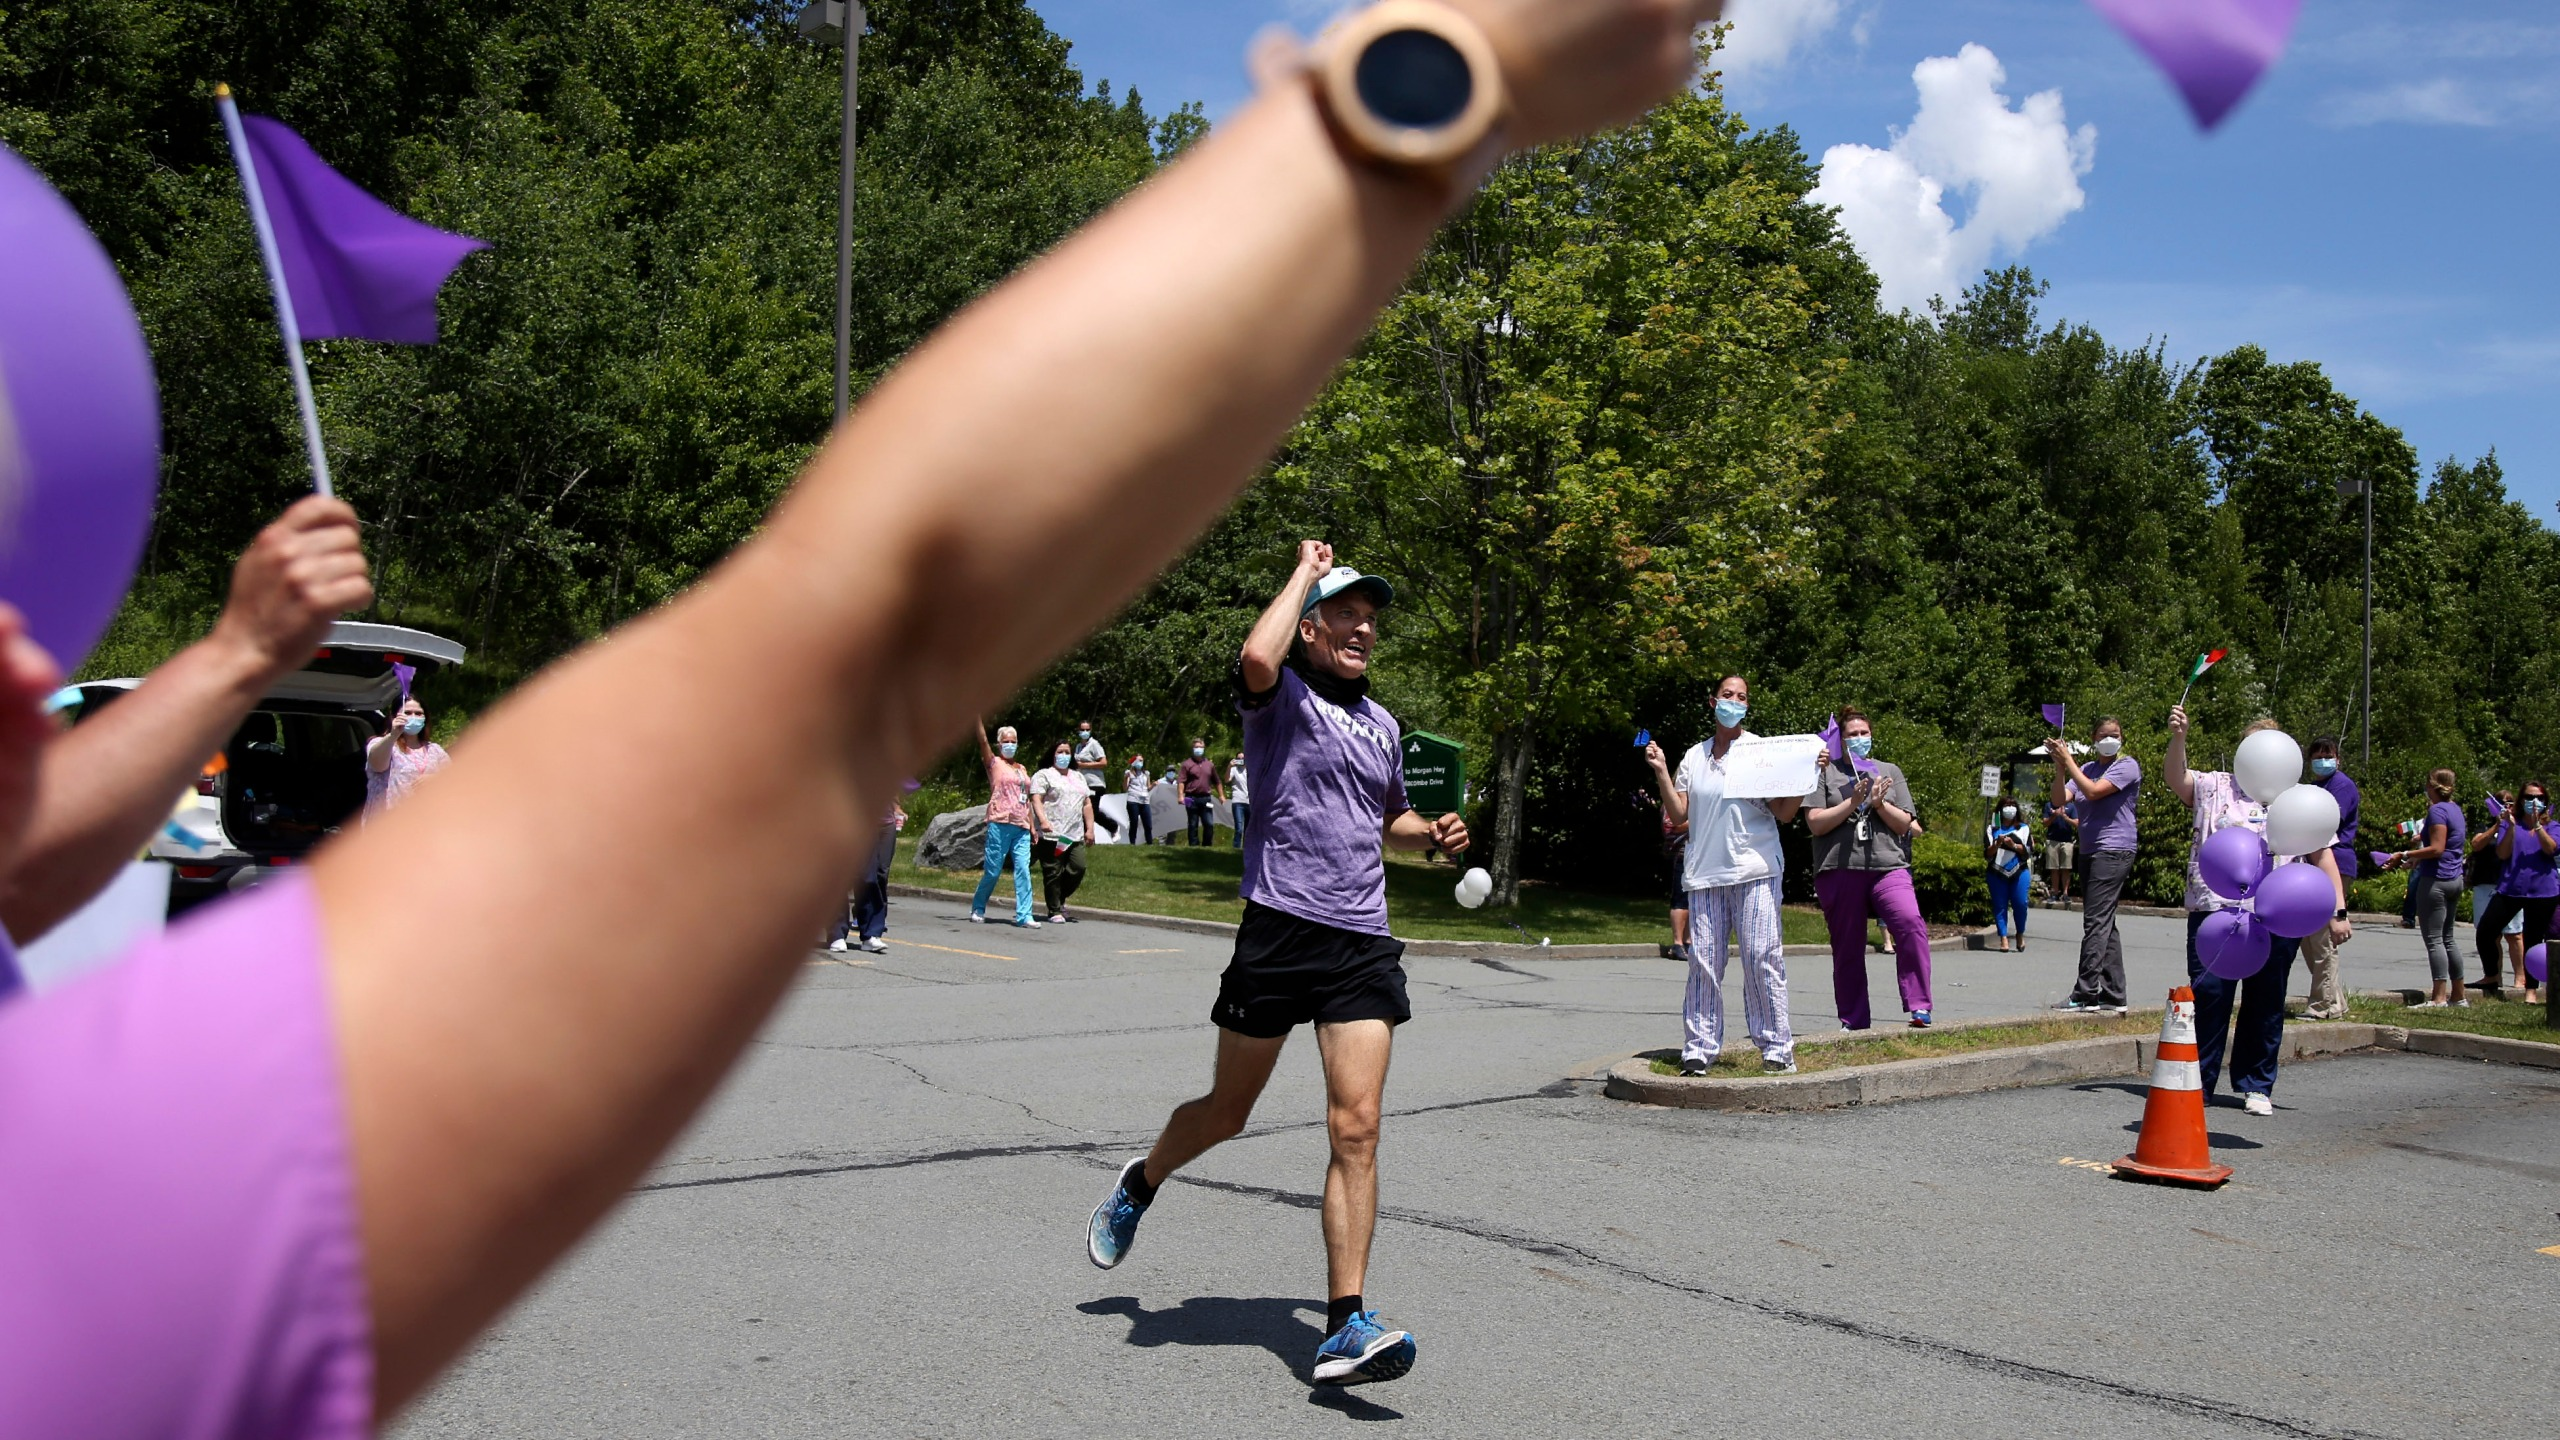 Nursing home workers cheer as Corey Cappelloni completes his seventh ultramarathon in seven days in Scranton, Pa., Friday, June 19, 2020. Cappelloni ran roughly 218 miles from Washington, D.C., to Scranton to visit his 98-year-old grandmother and raise awareness for older adults in isolation amid the coronavirus pandemic. (AP Photo/Jessie Wardarski)